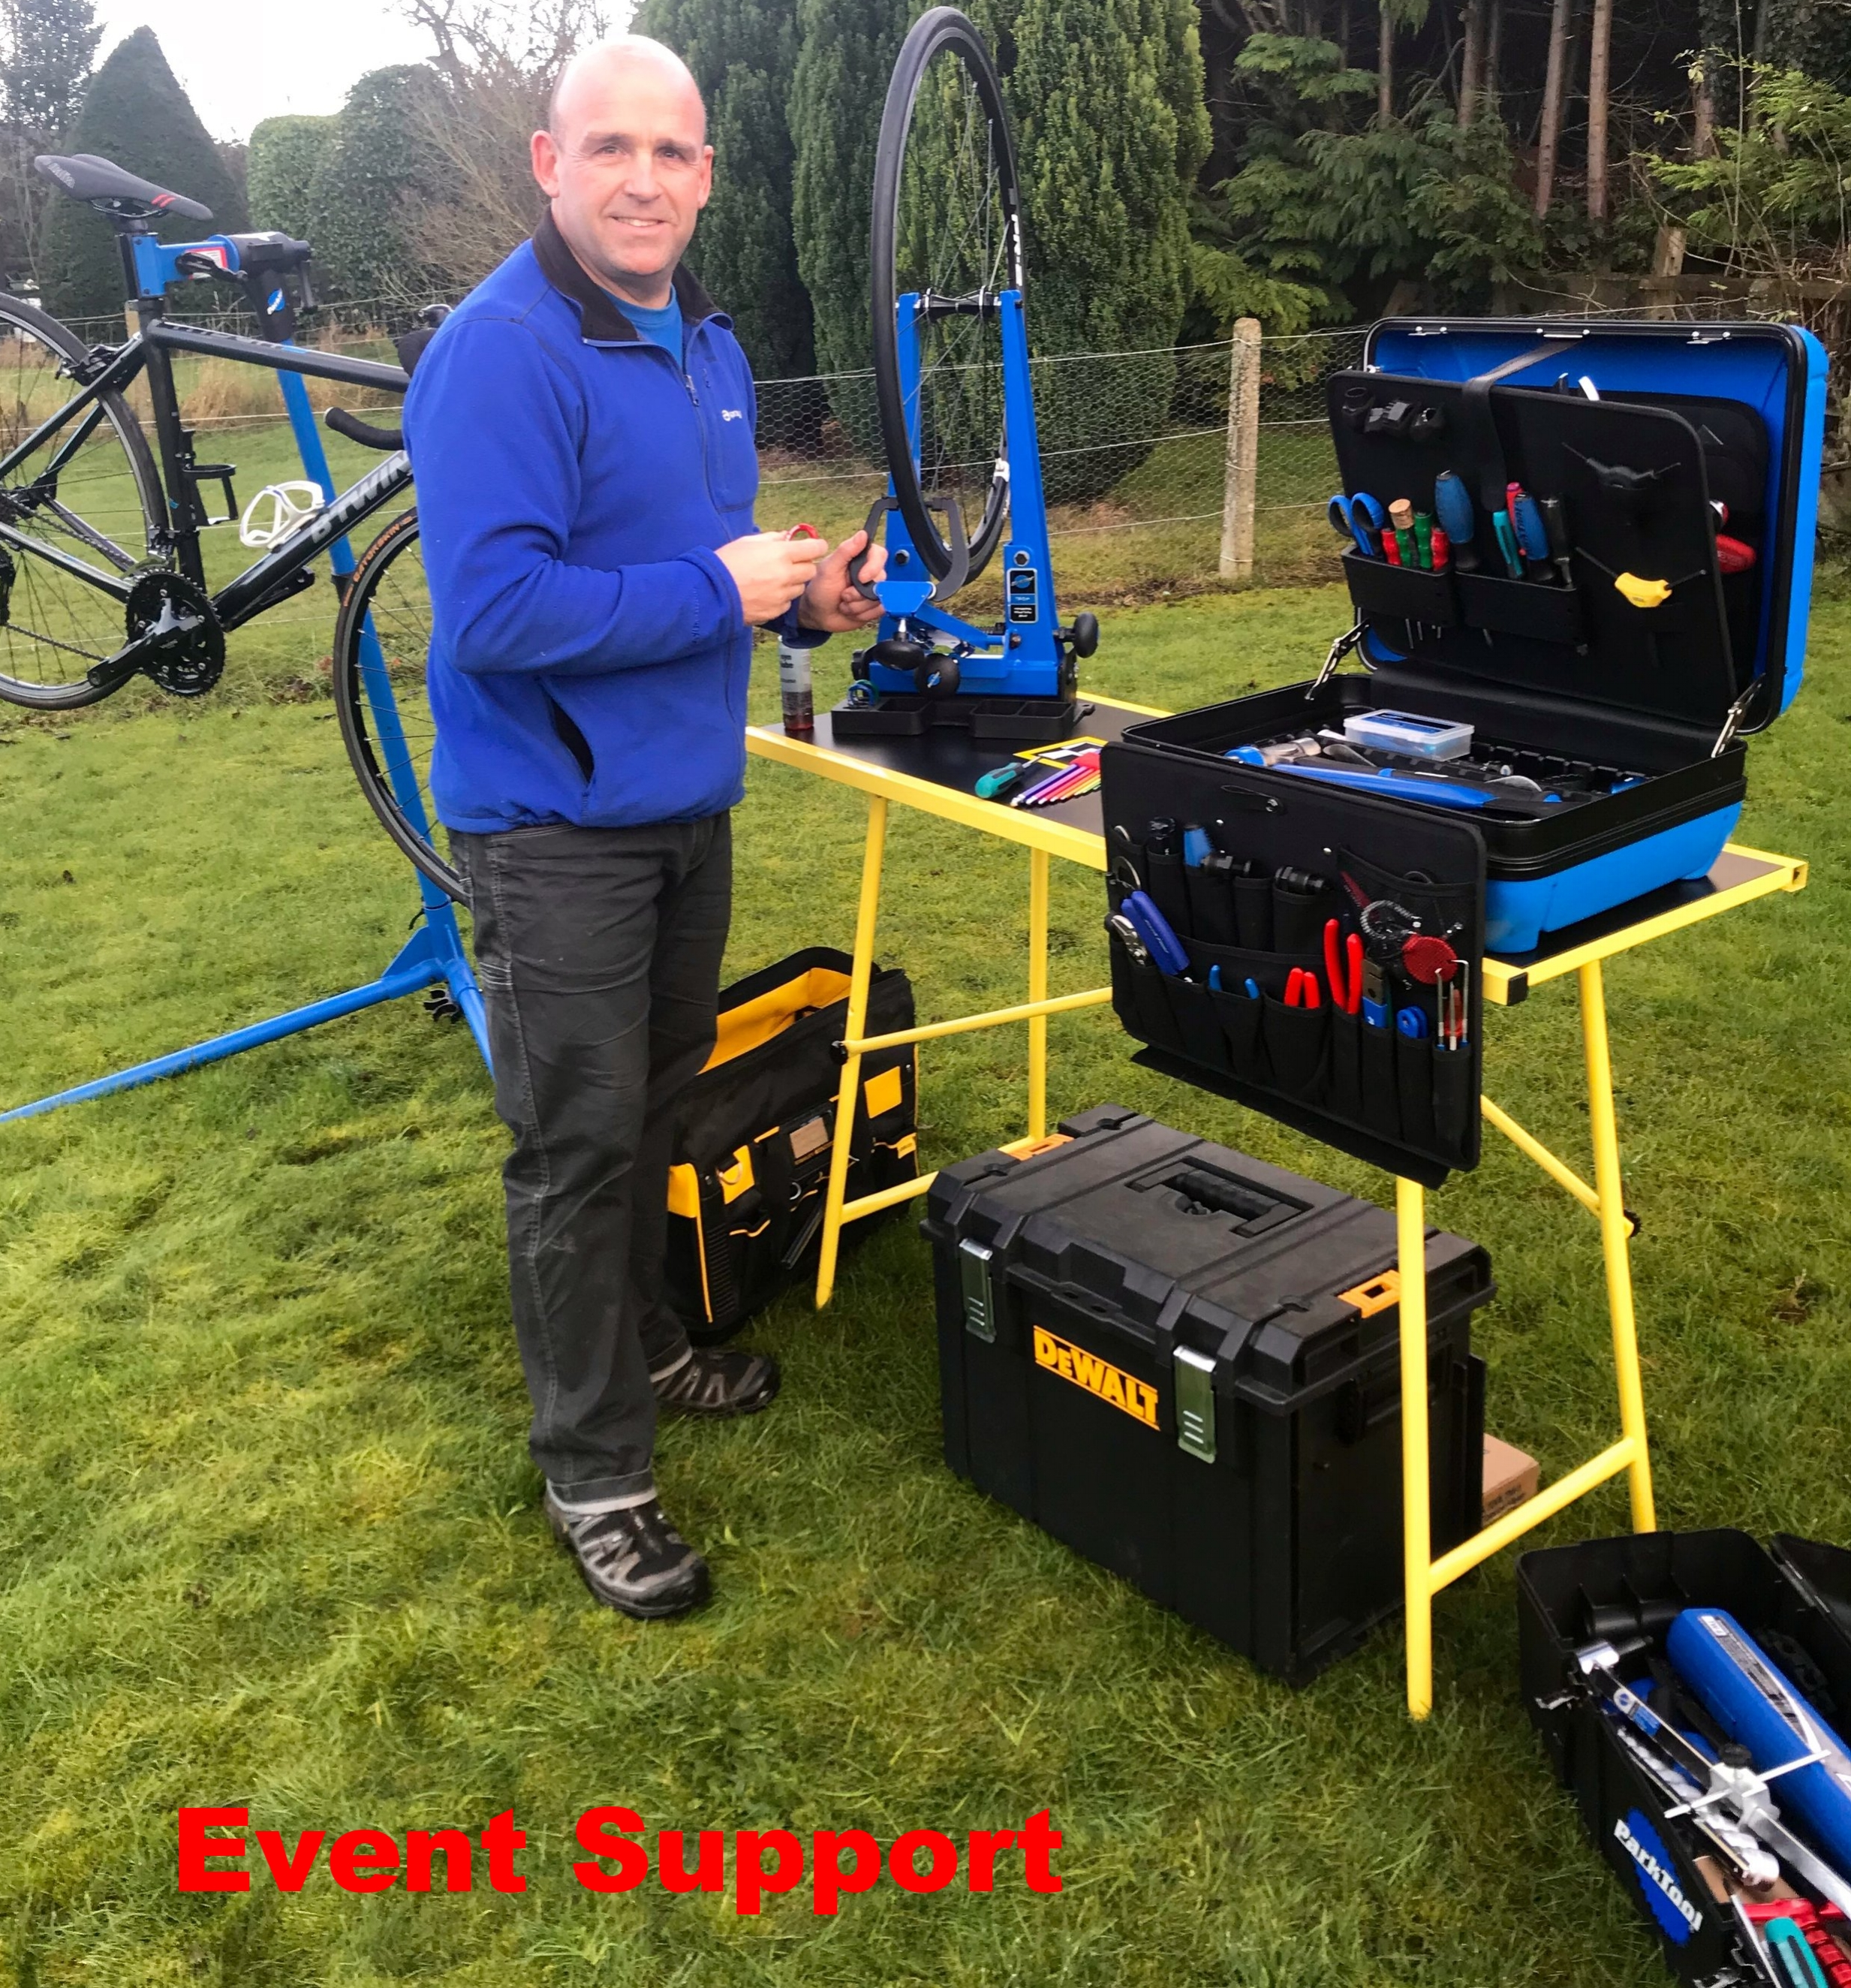 Imp Adventures provides support to numerous cycling events throughout the UK and further affield, offering - Logistics expertise, event planning, route reconnaissance, risk assessments, cycle guiding, professional staffing, first aid cover and qualified mechanical support. Contact Imp Adventures for further details.